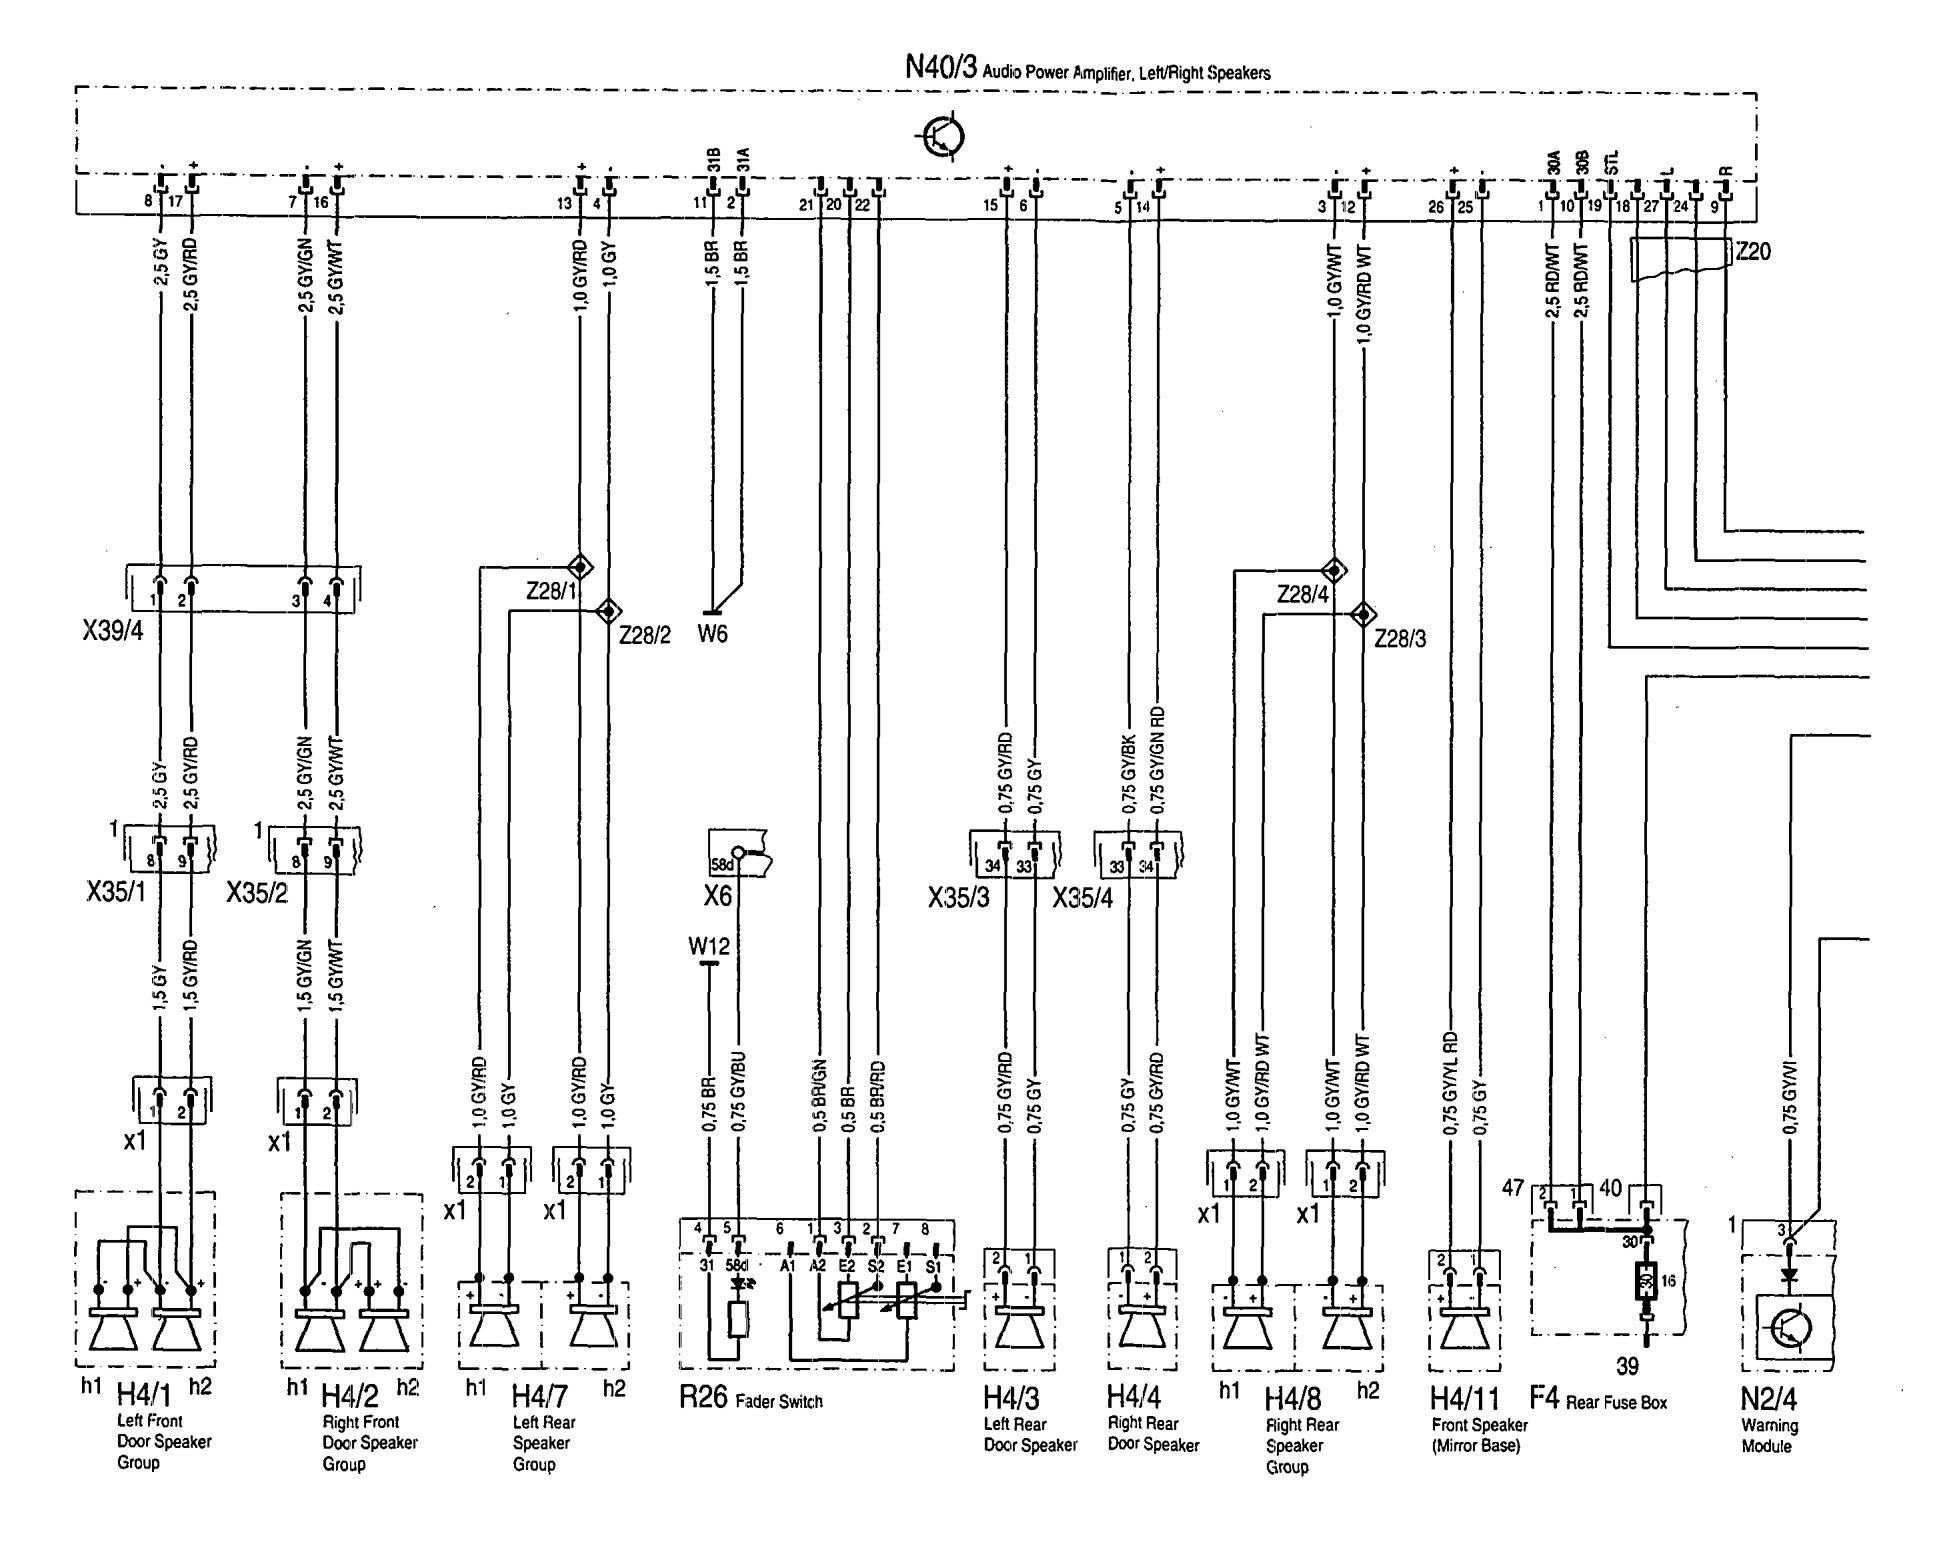 mercedes-benz 300sd (1992 - 1993) - wiring diagrams - audio -  carknowledge.info  carknowledge.info